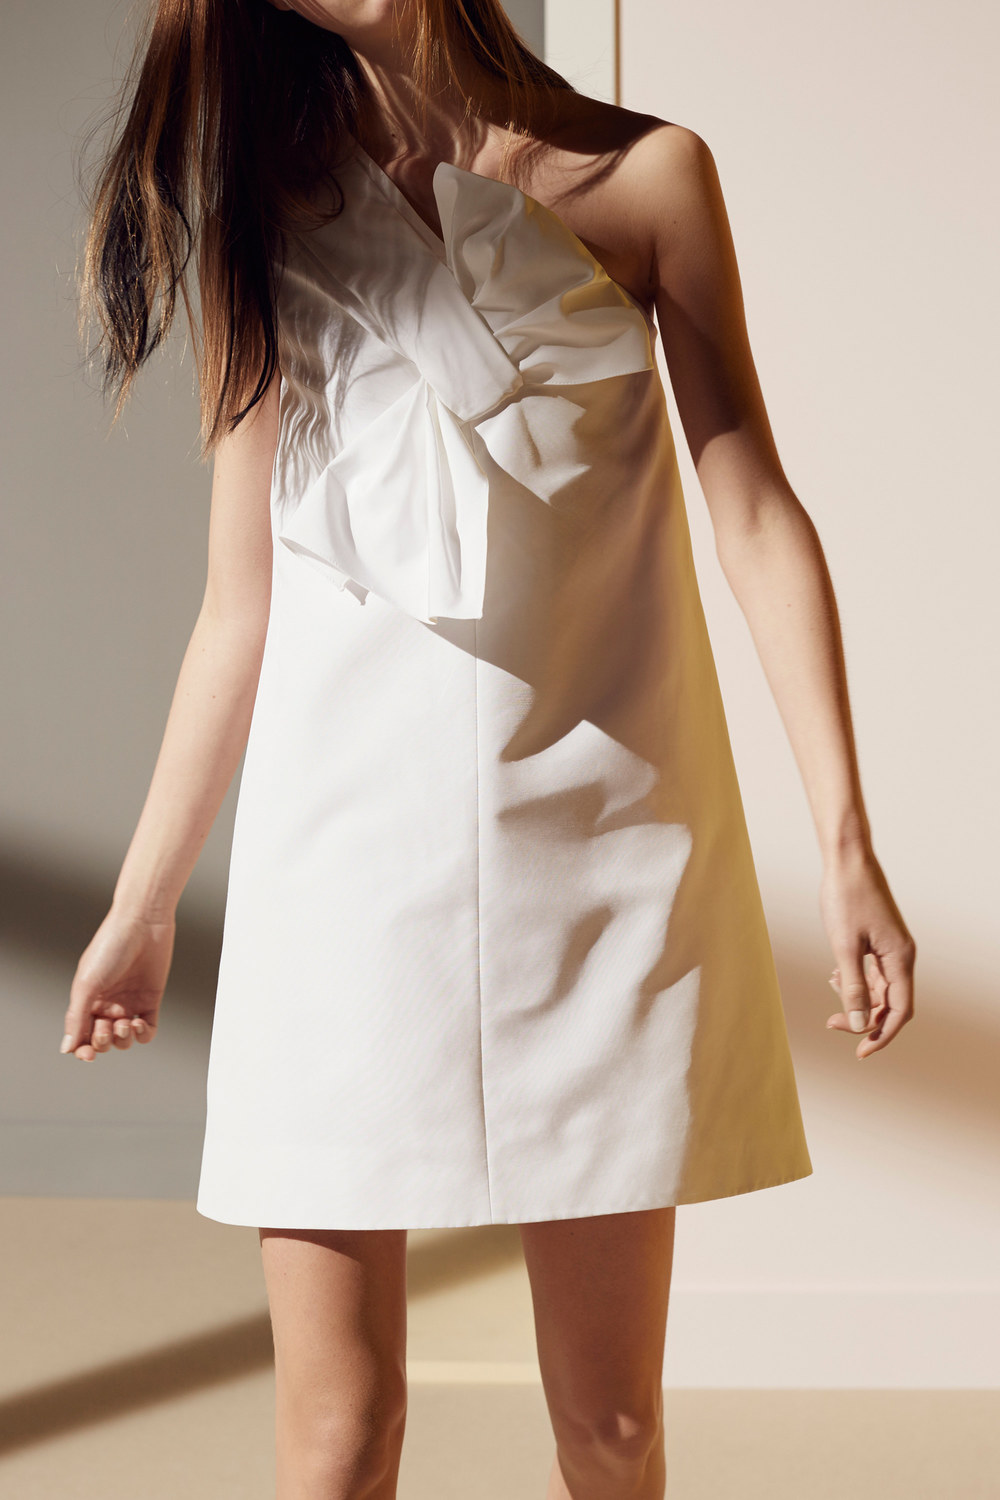 victoria-victoria-beckham-pre-fall-2016-lookbook-17.jpg